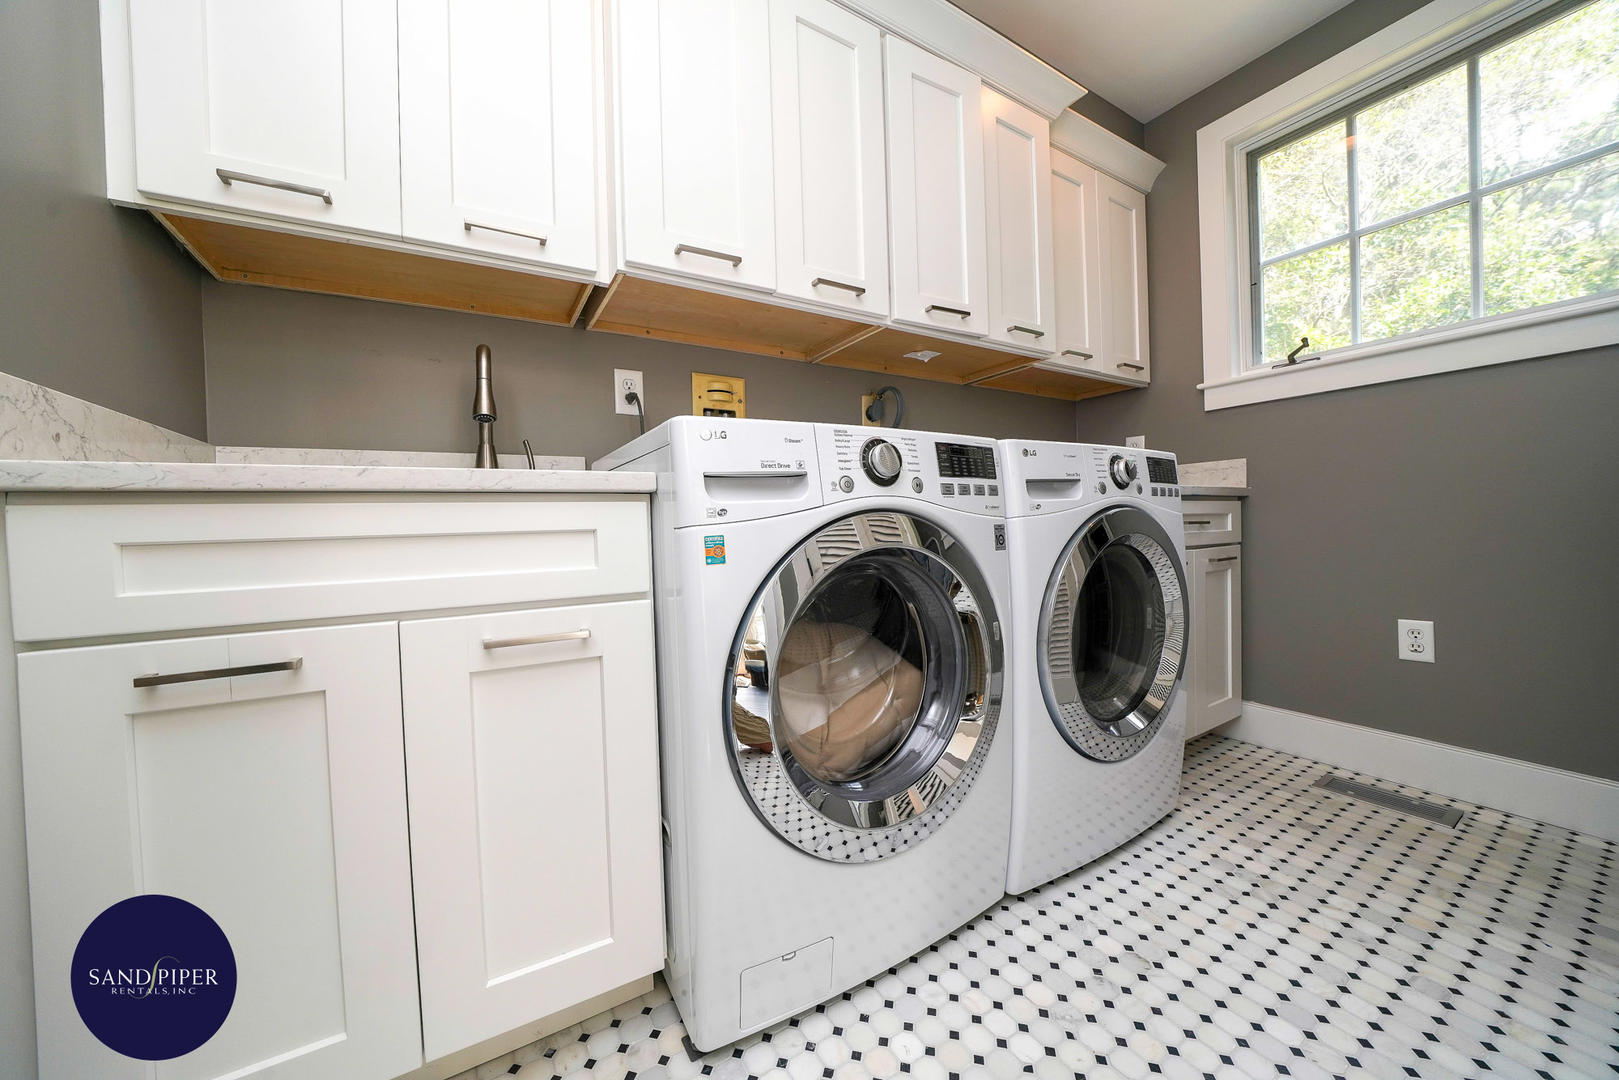 Laundry room first floor off Kitchen